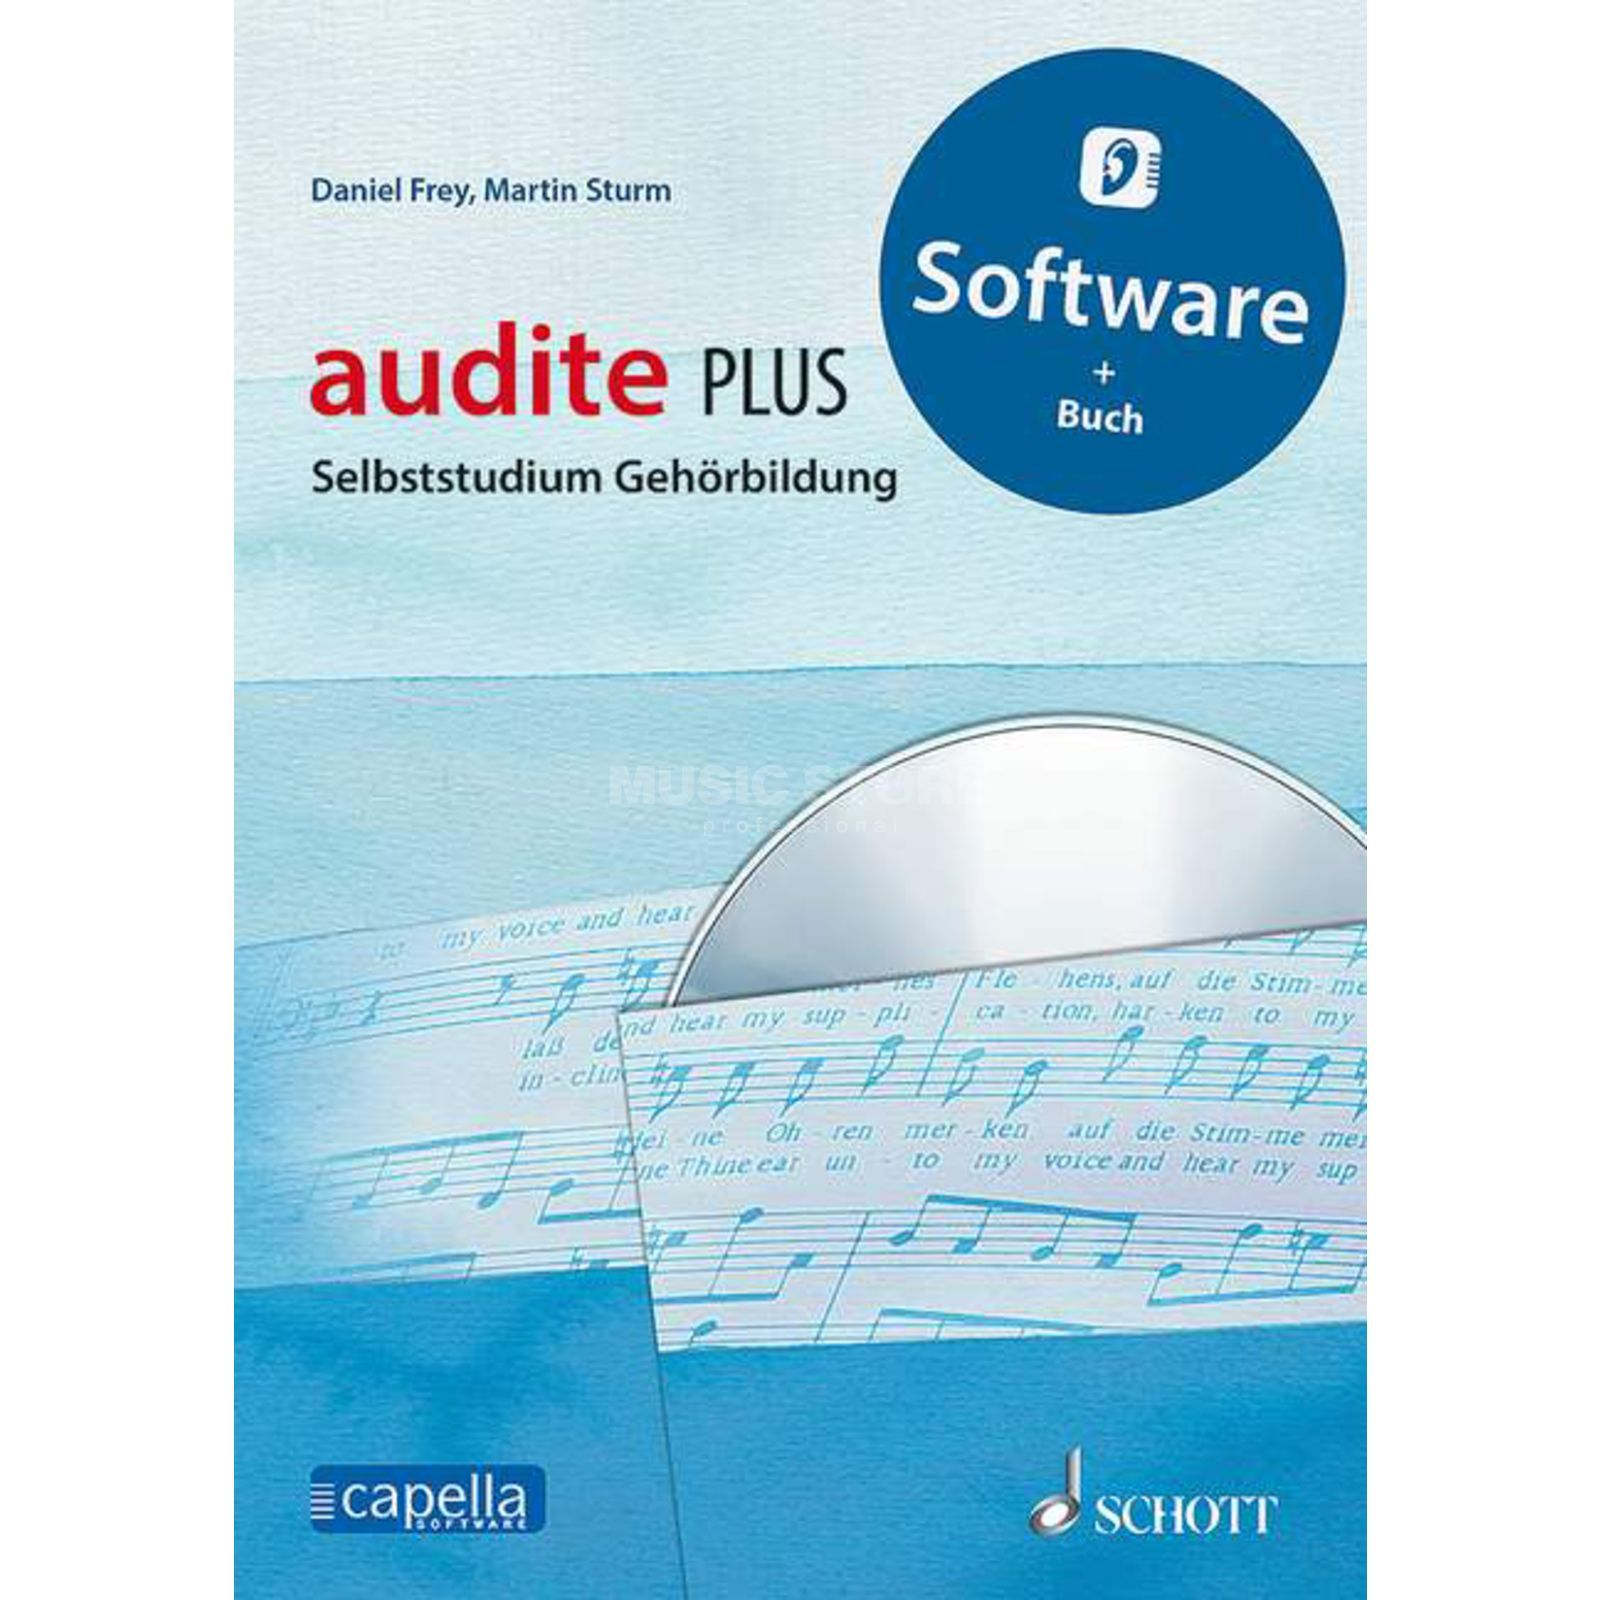 Schott Music audite PLUS Product Image